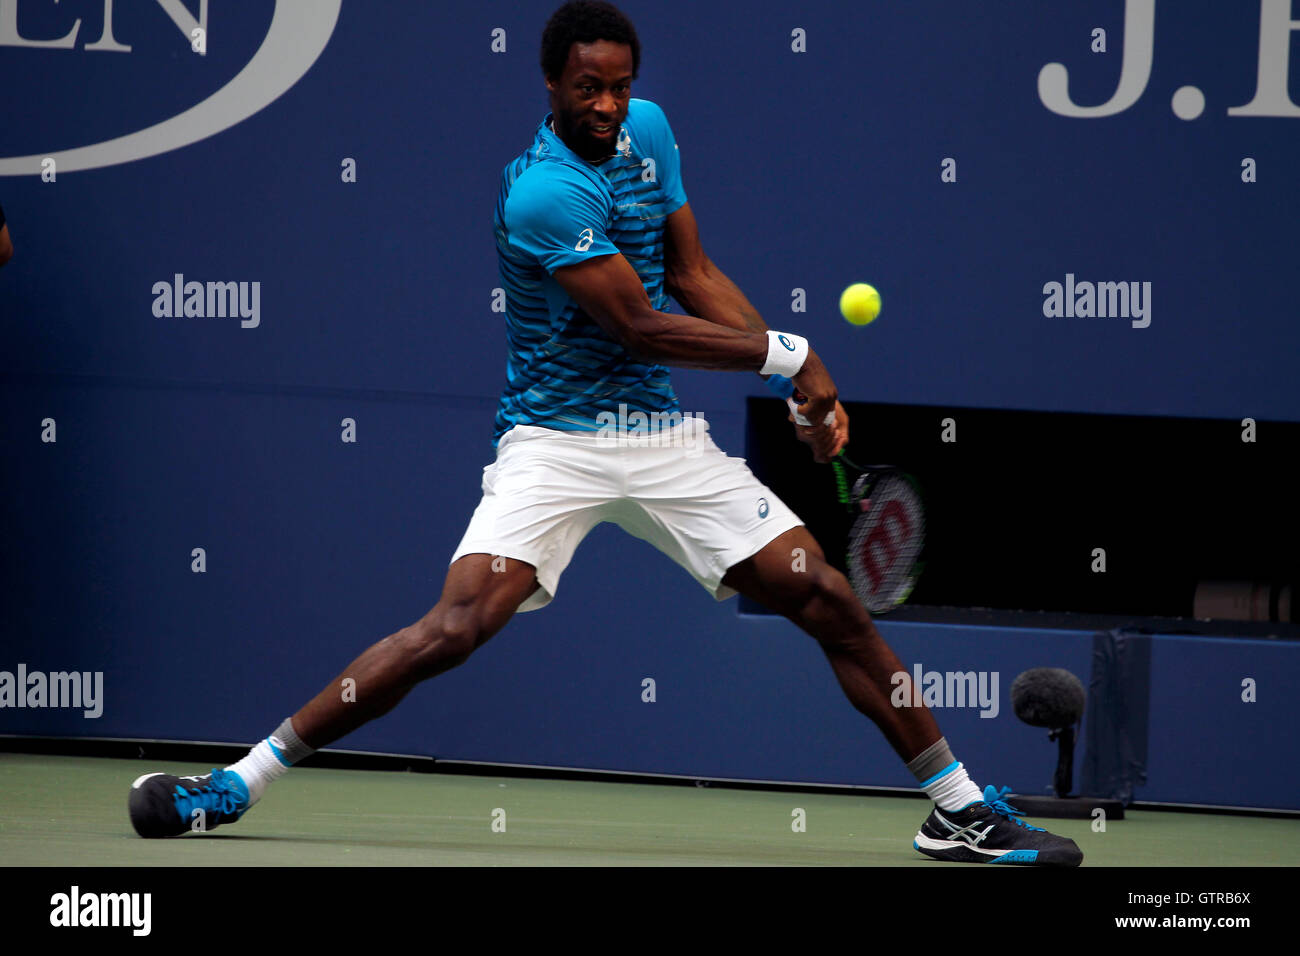 New York, United States. 09th Sep, 2016. Gael Monfils of France during his semi final match against Novak Djokovic - Stock Image